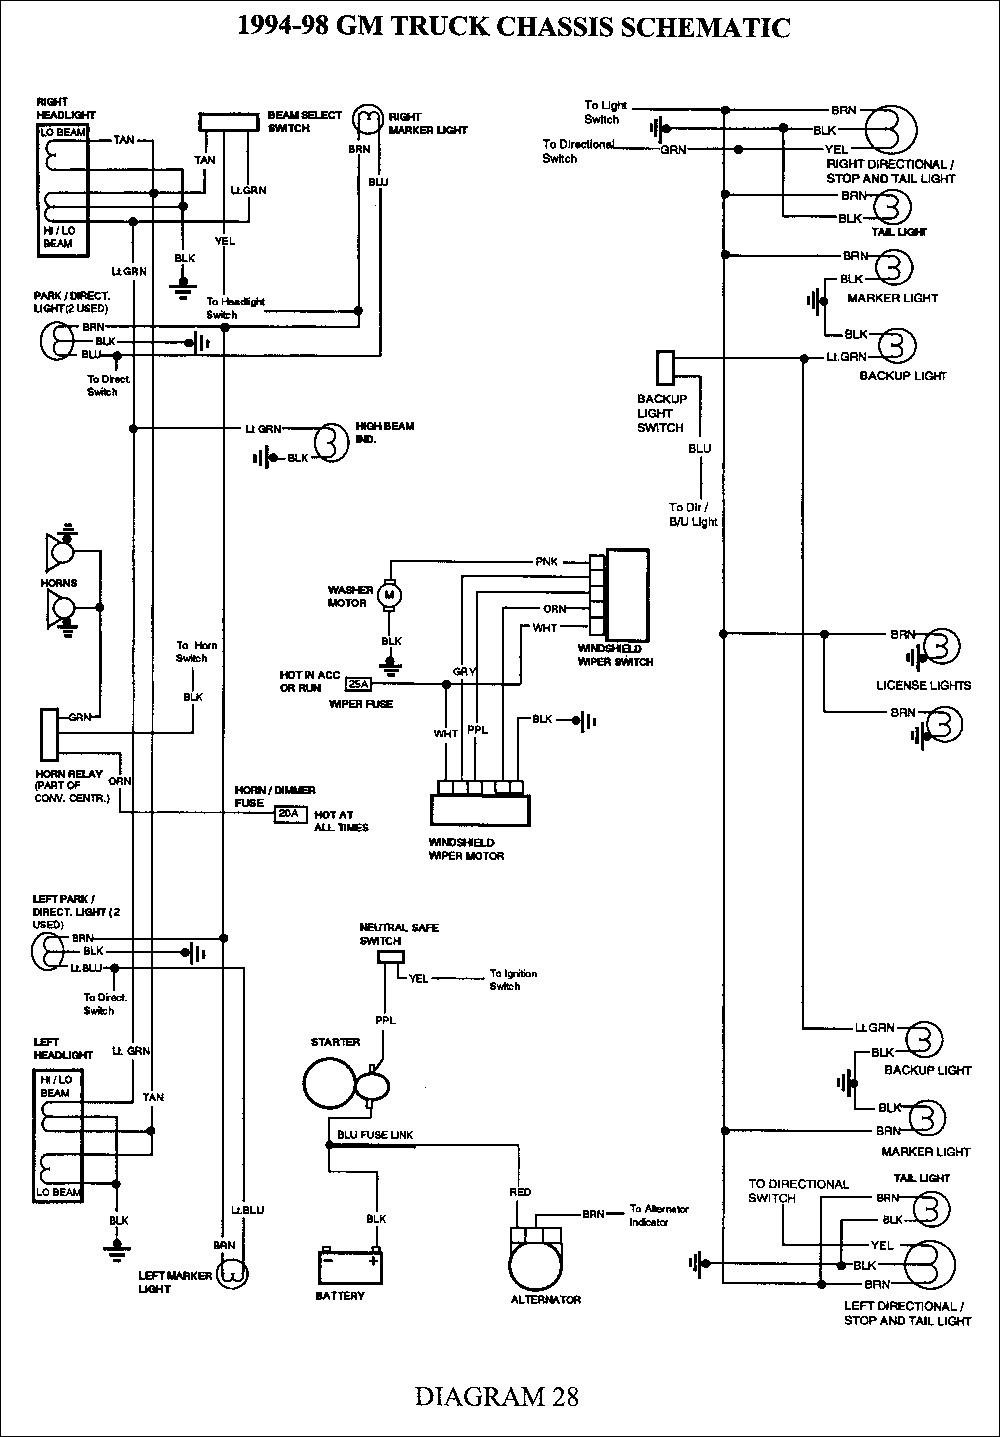 Tail Light Wiring Diagram 1987 Chevy K 5 List Of Schematic Circuit 2013  Escape Tail Light Wiring 89 G30 Tail Light Wiring